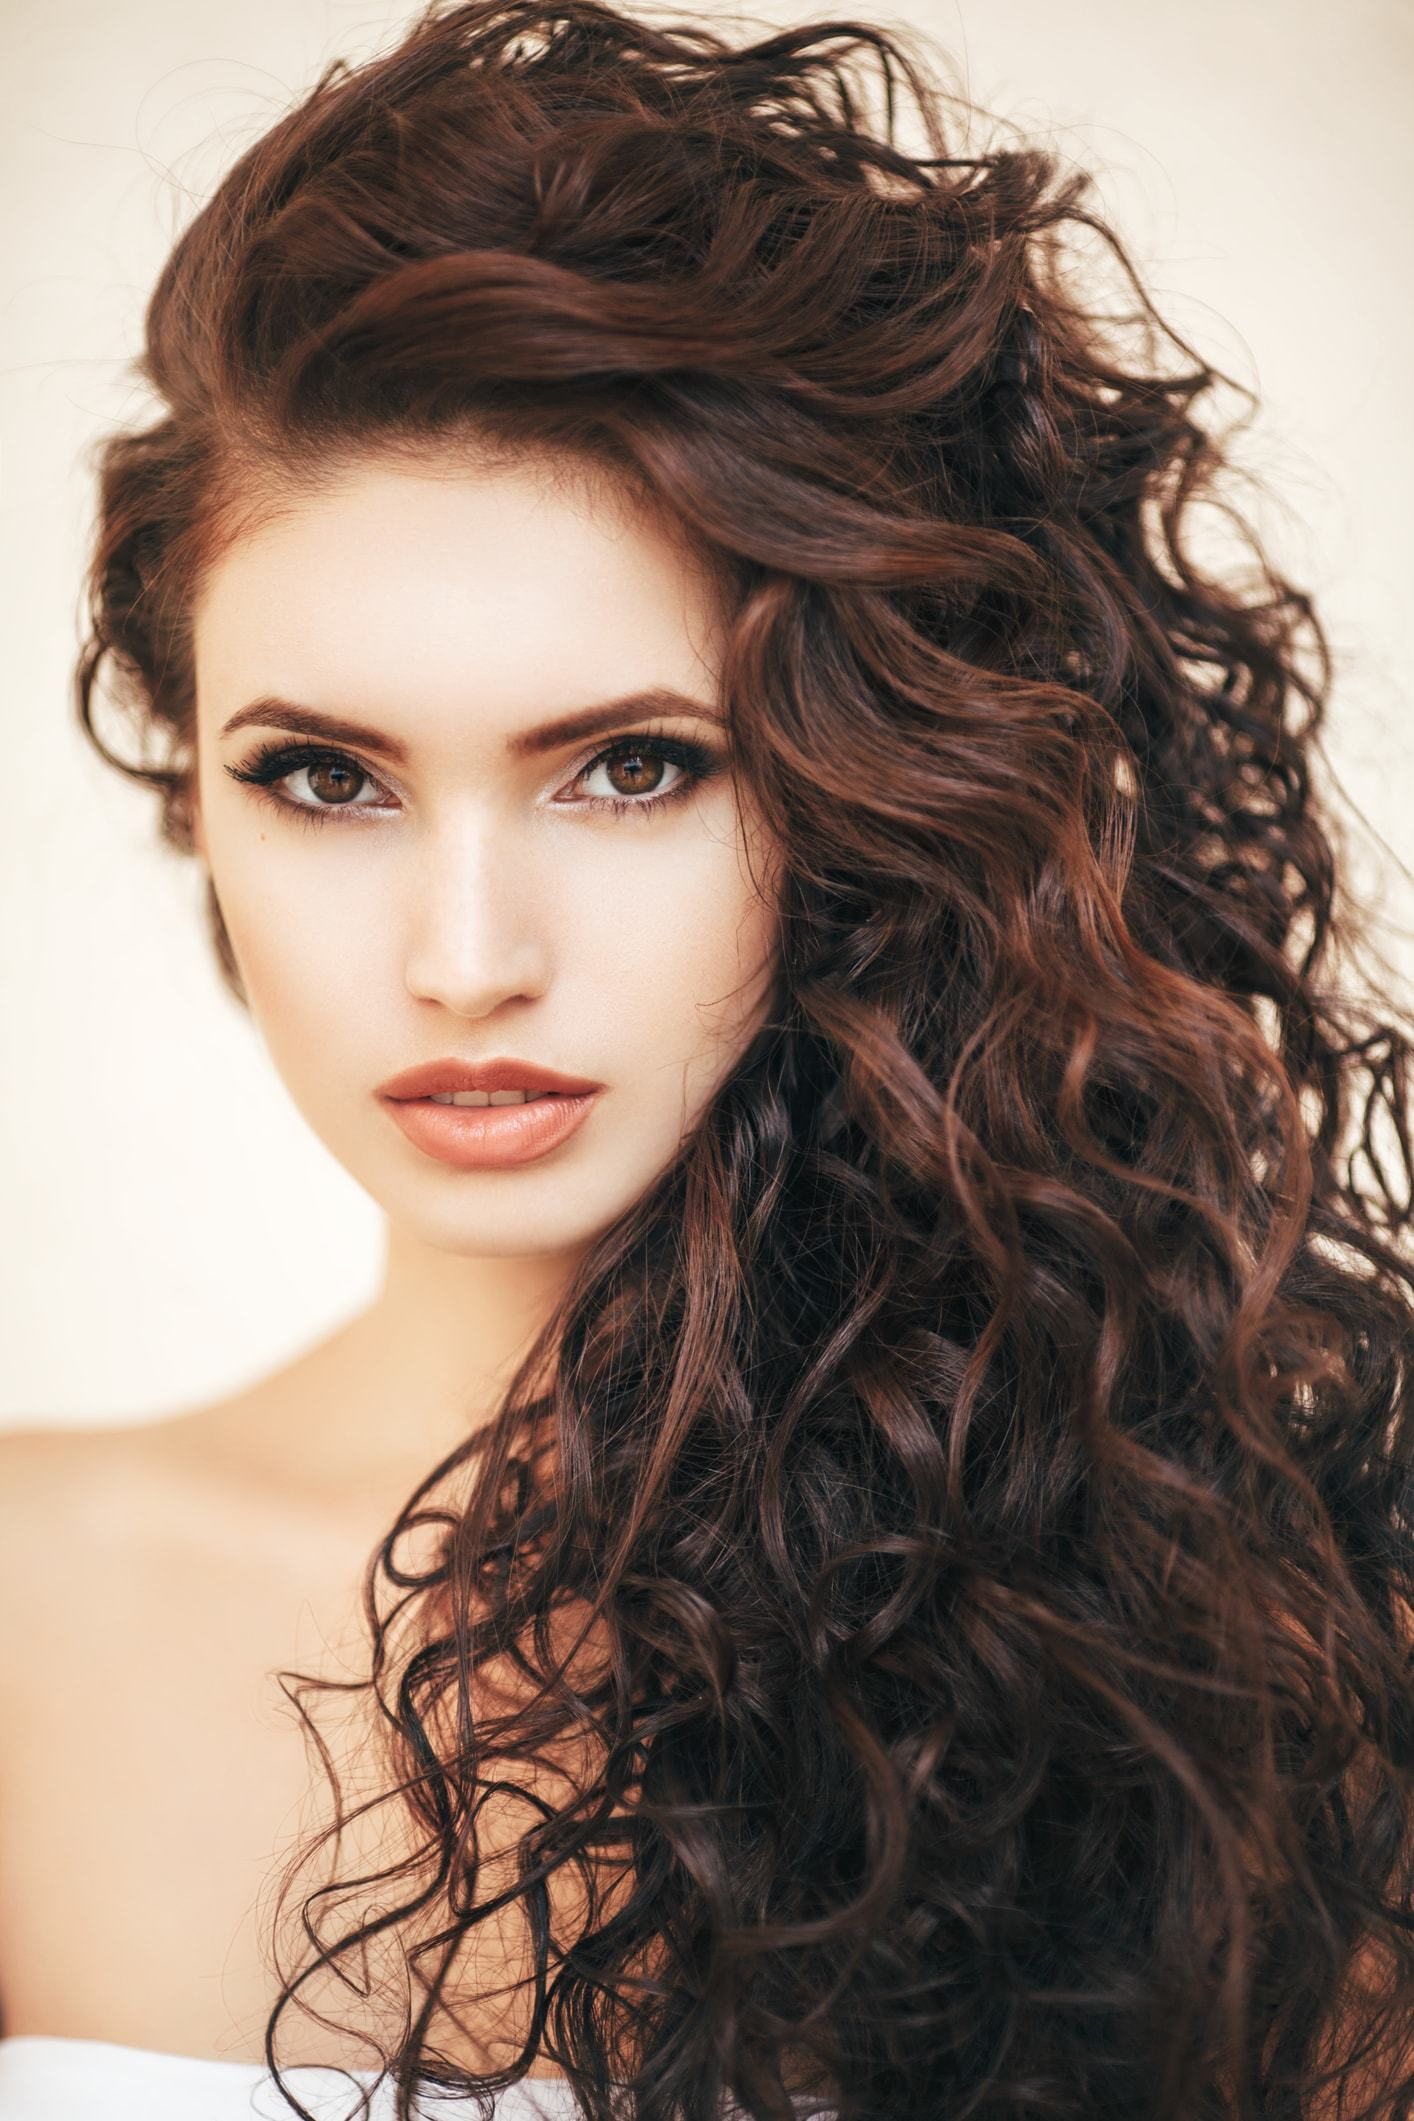 Curly Perm: 20 Curly Looks to Consider for Your First Perm